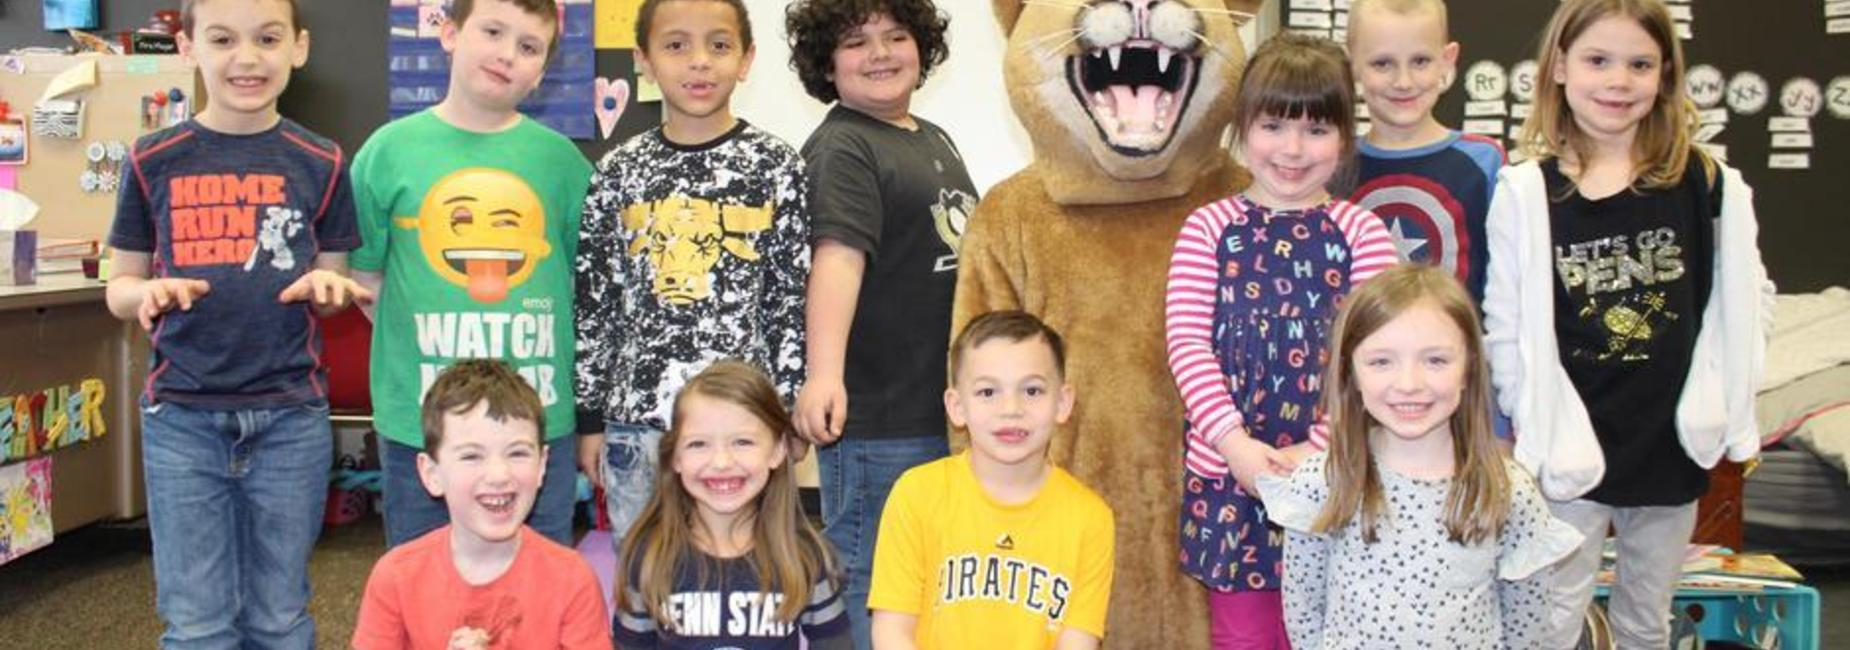 students lined up with mascot